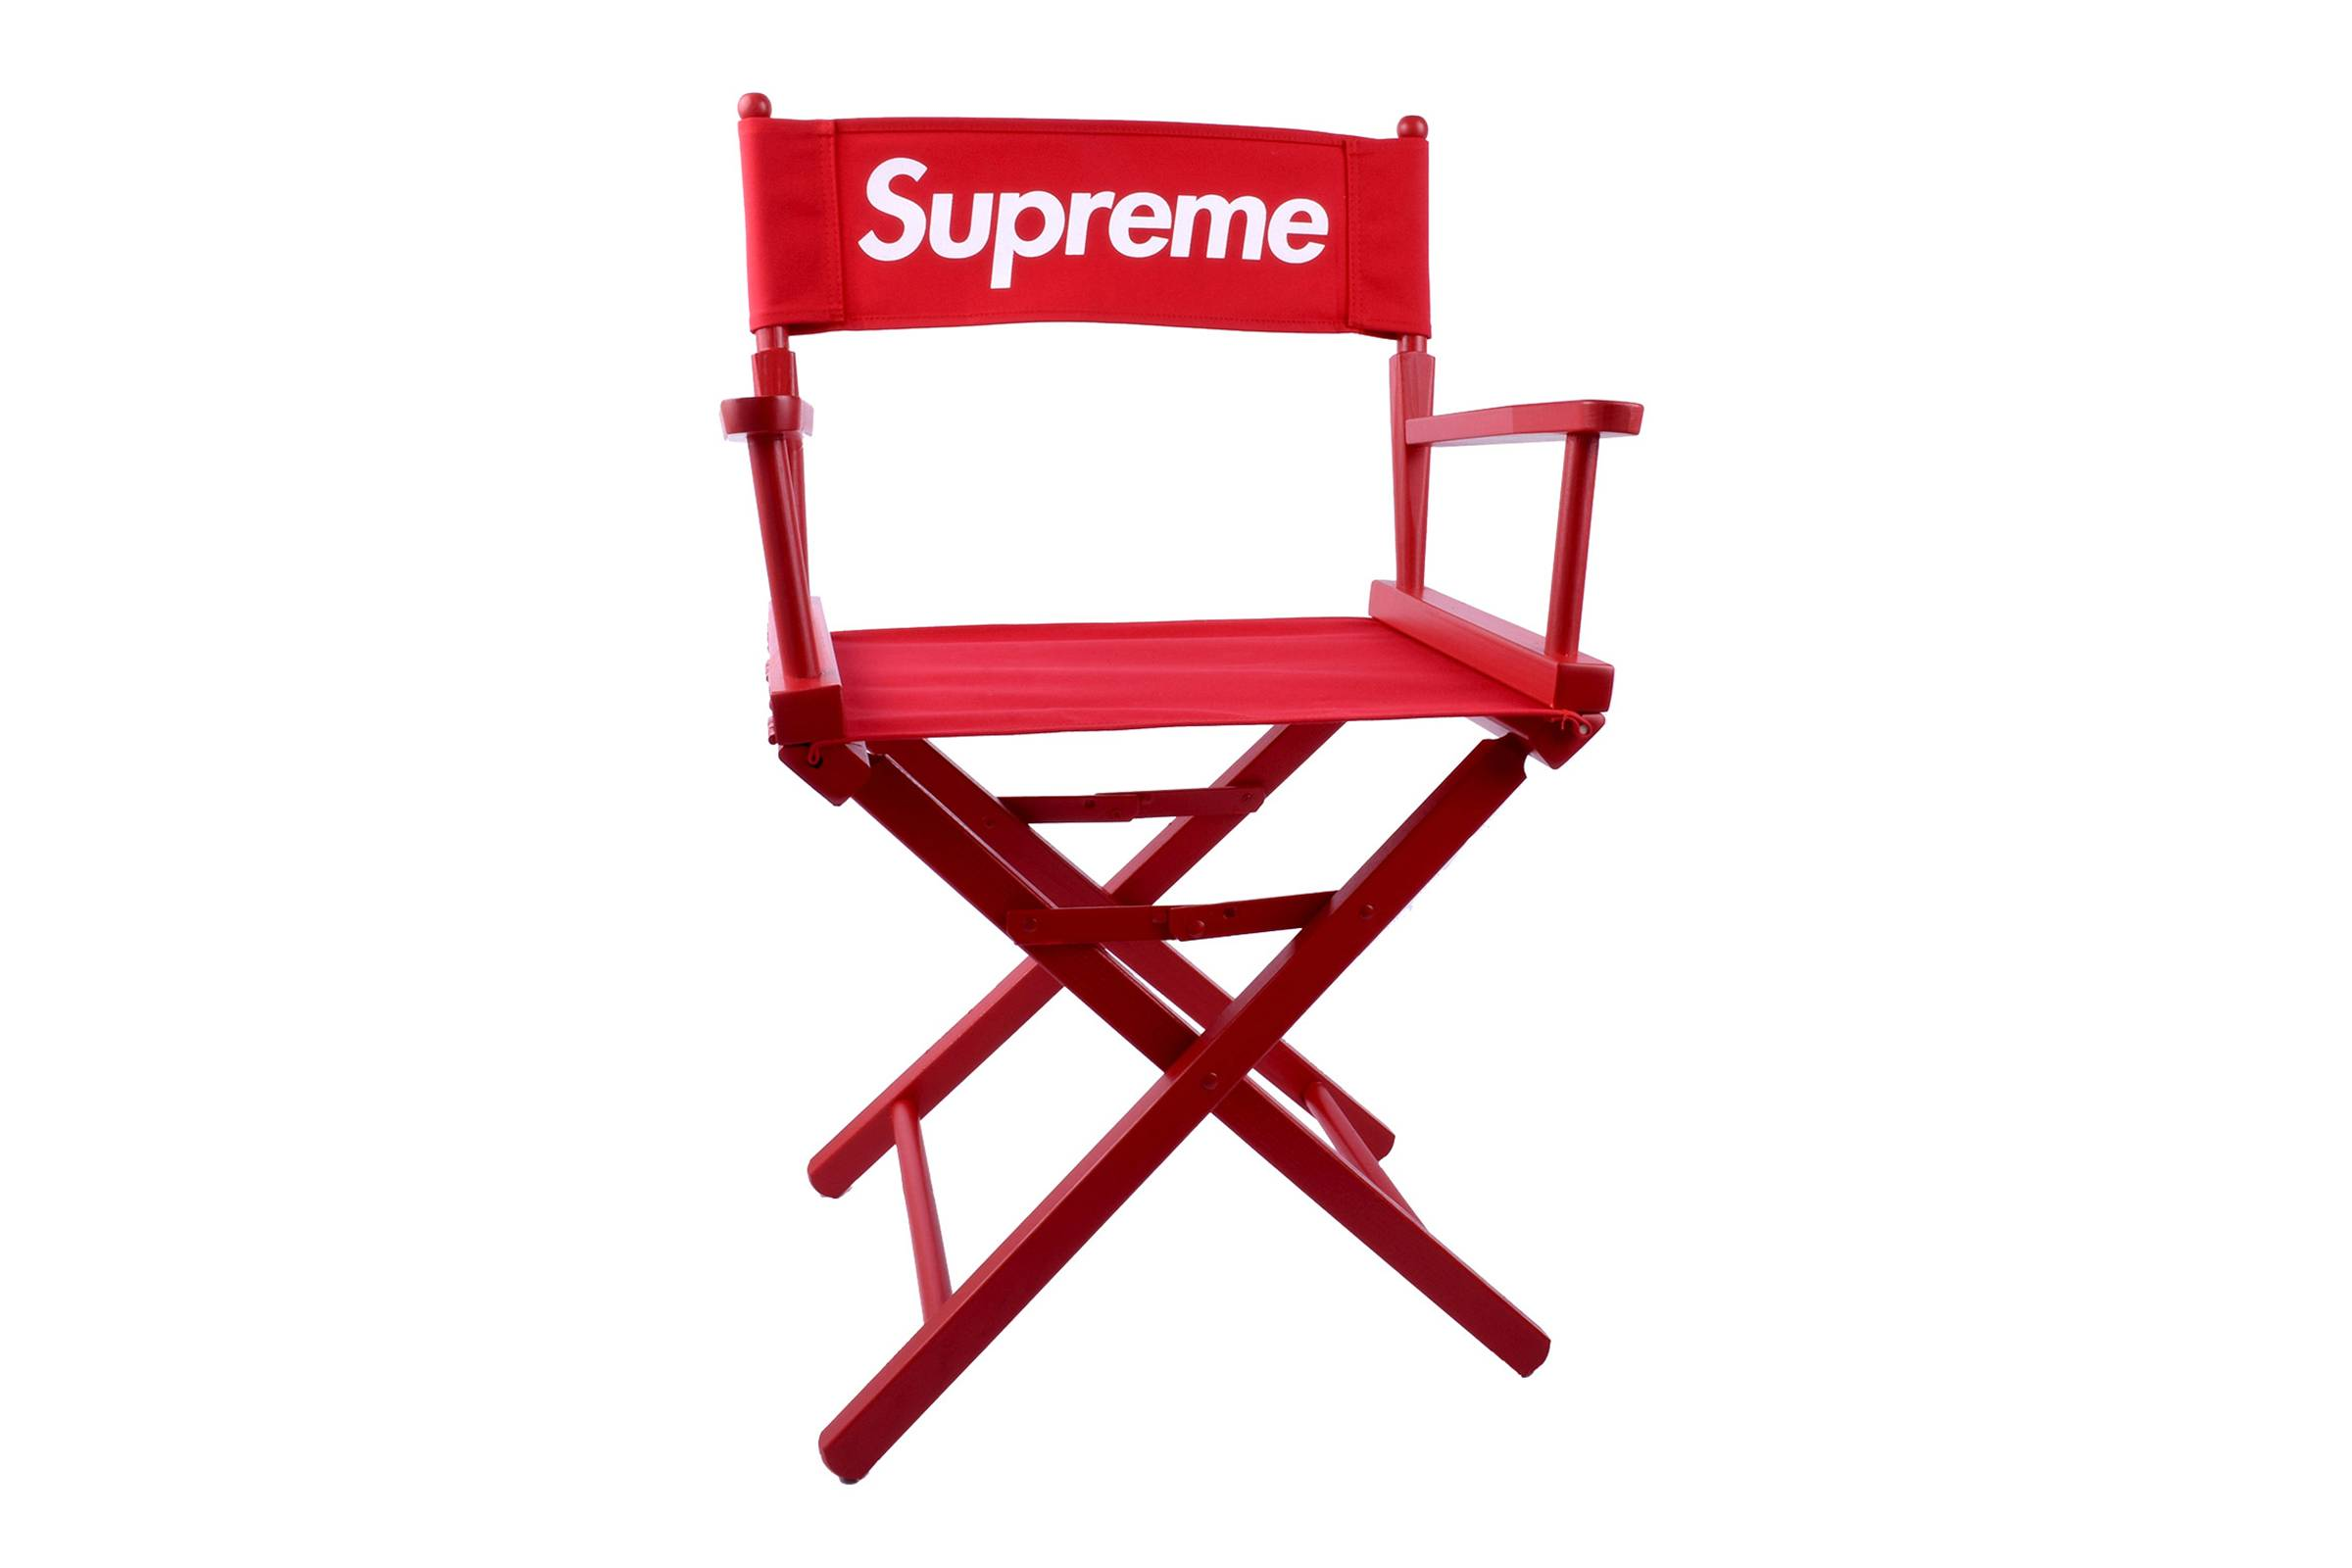 Supreme Sundays: March 31, 2019